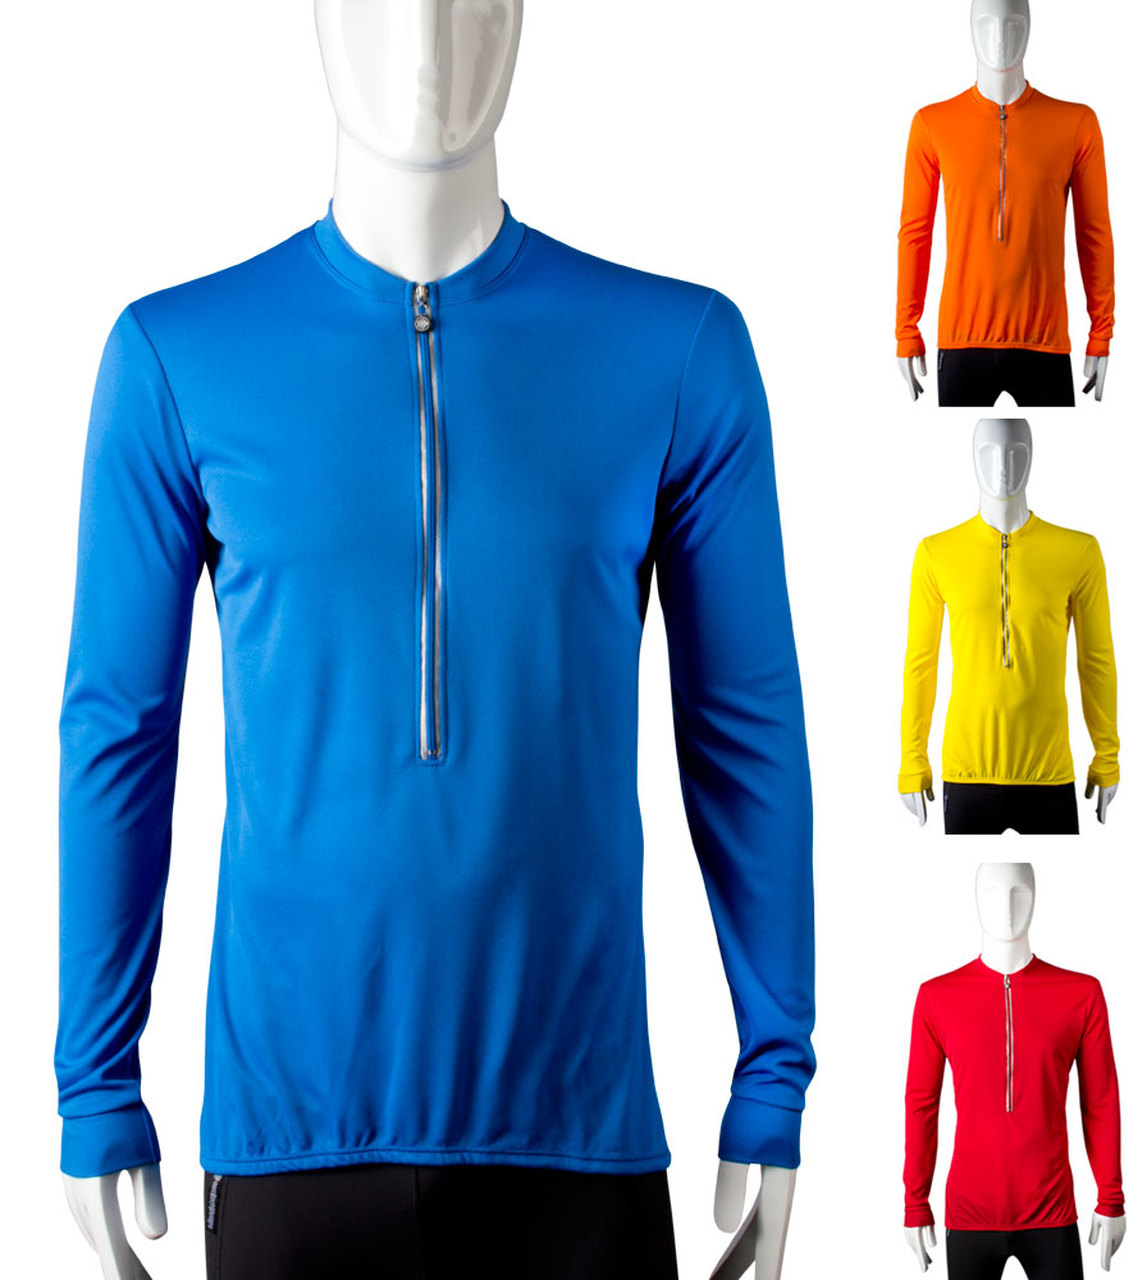 tall-long-sleeve-cycling-jerseys-icon.jpg